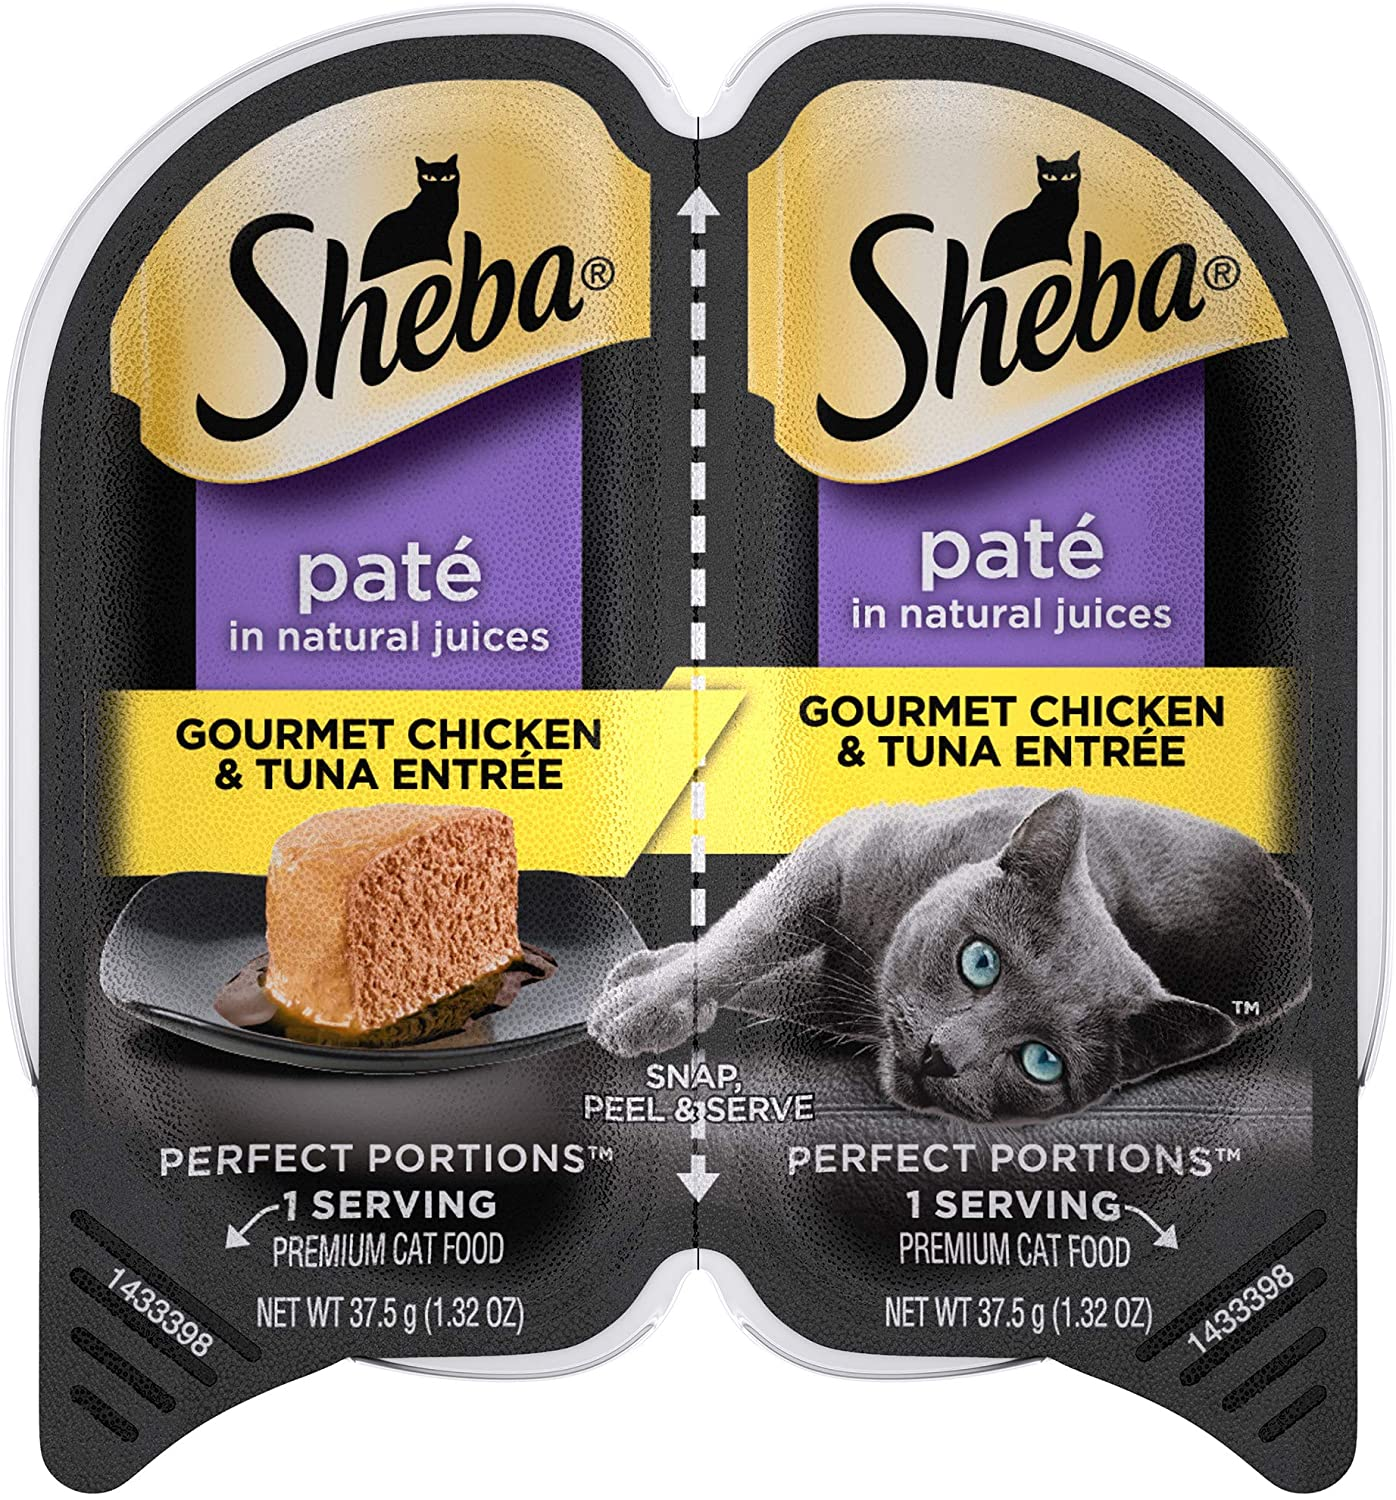 SHEBA PERFECT PORTIONS Adult Soft Wet Cat Food Paté, Gourmet Chicken & Tuna Entrée, (24) 2.6 oz. Twin-Pack Trays